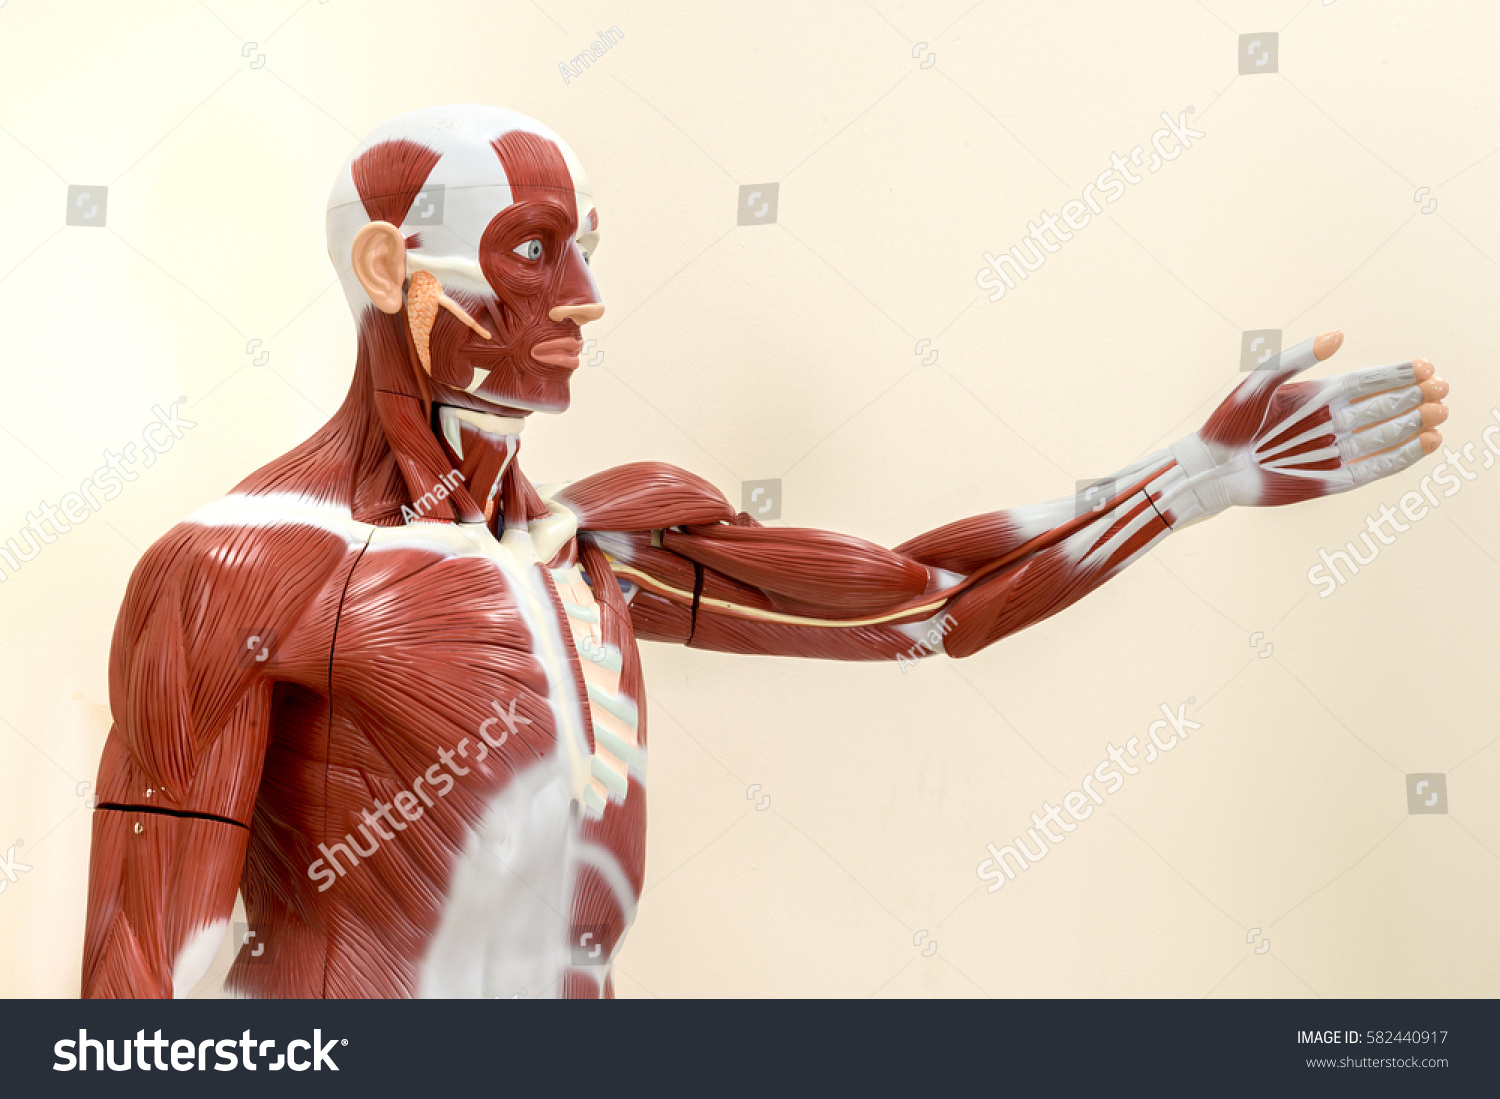 Human Muscles Anatomy Model Isolated Upper Stock Photo Royalty Free